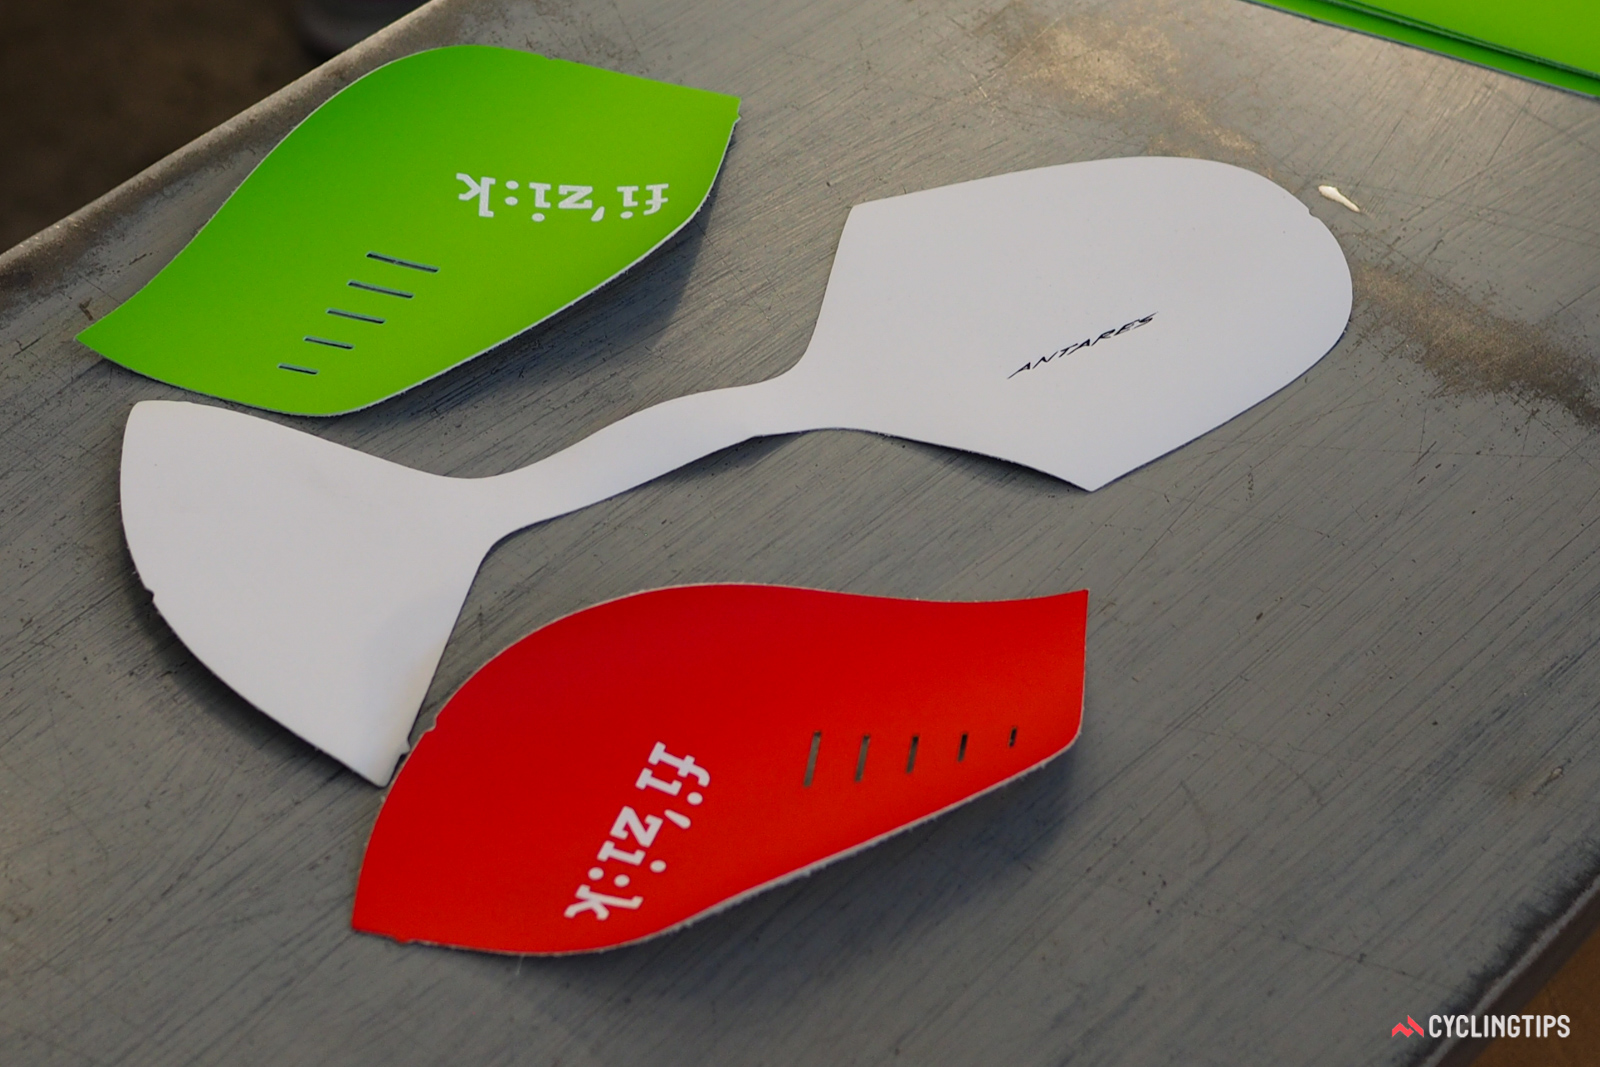 Fi'zi:k's compact manufacturing structure allows custom covers like this to be done extremely quickly.